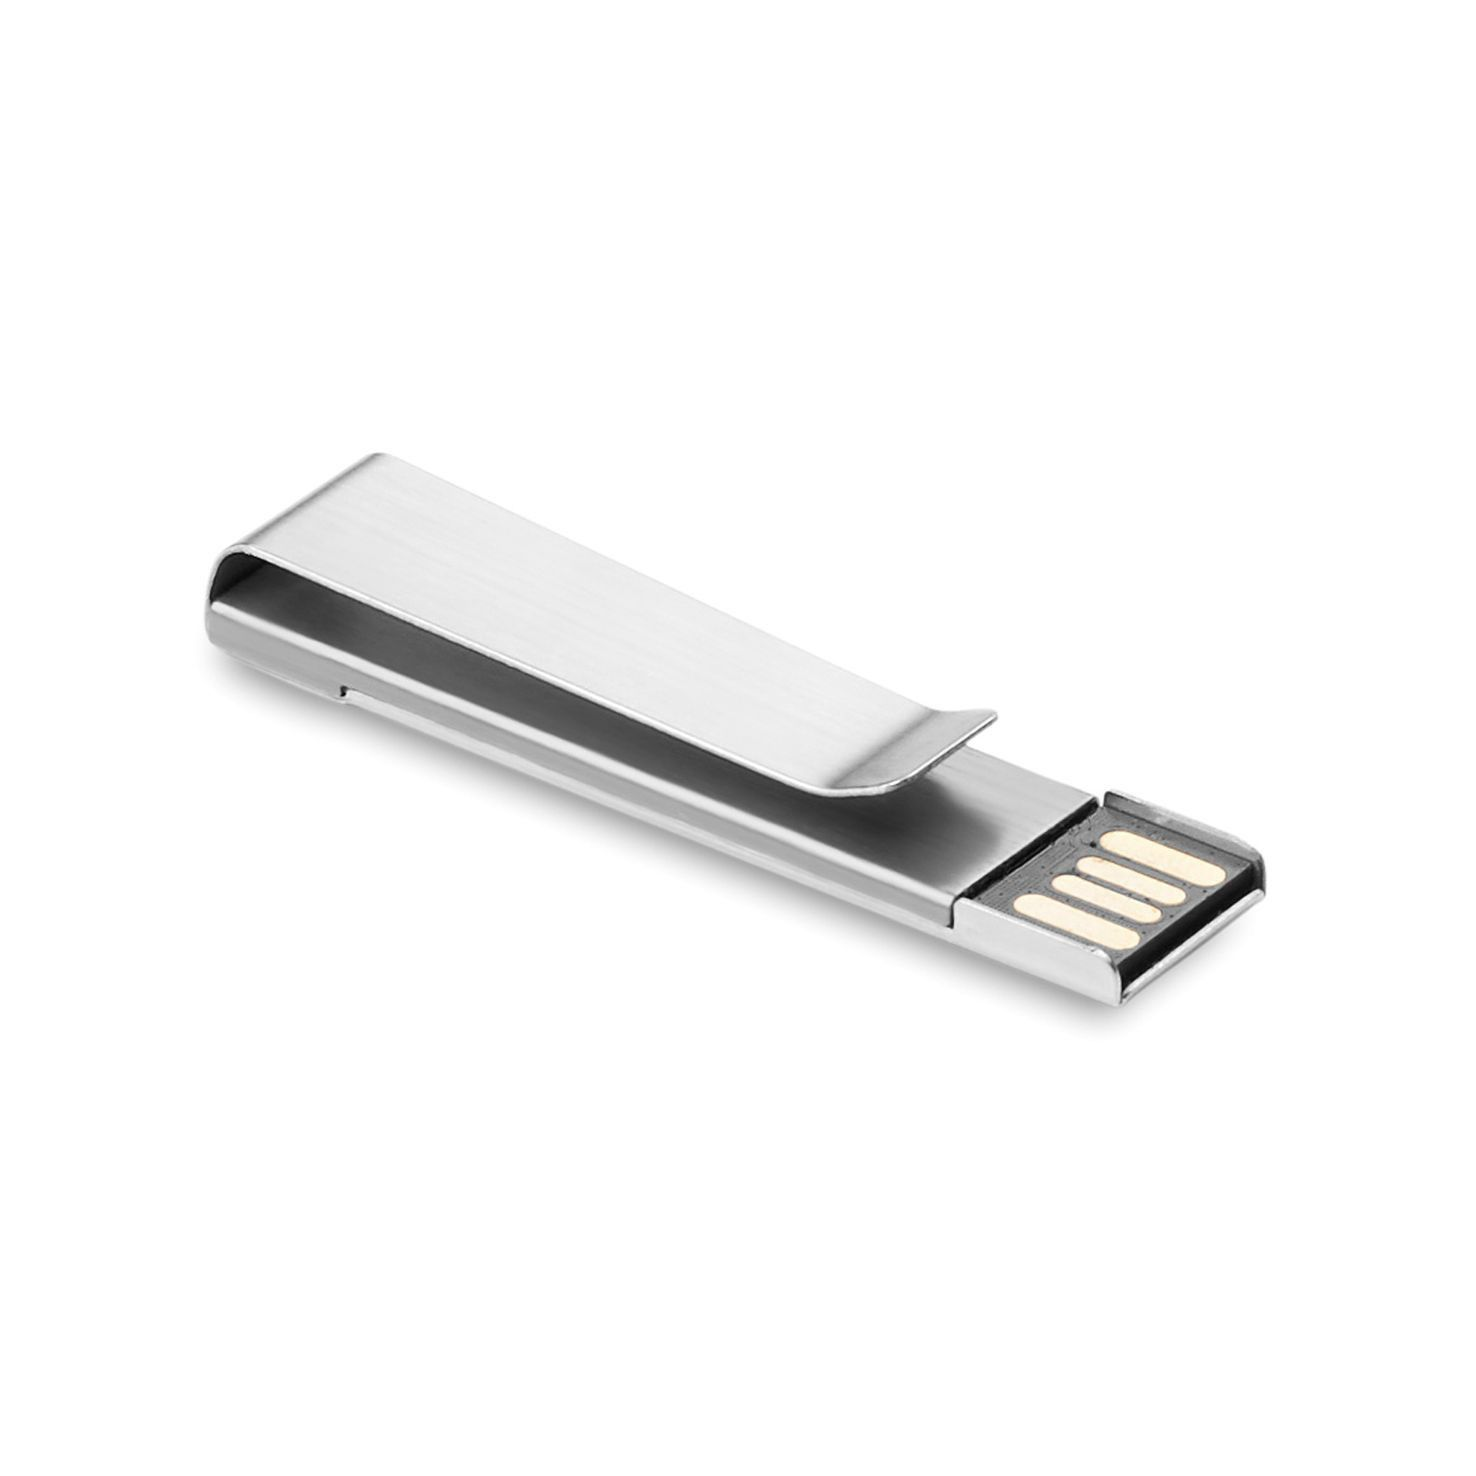 Zilvere USB stick | Metalen clip | 16GB